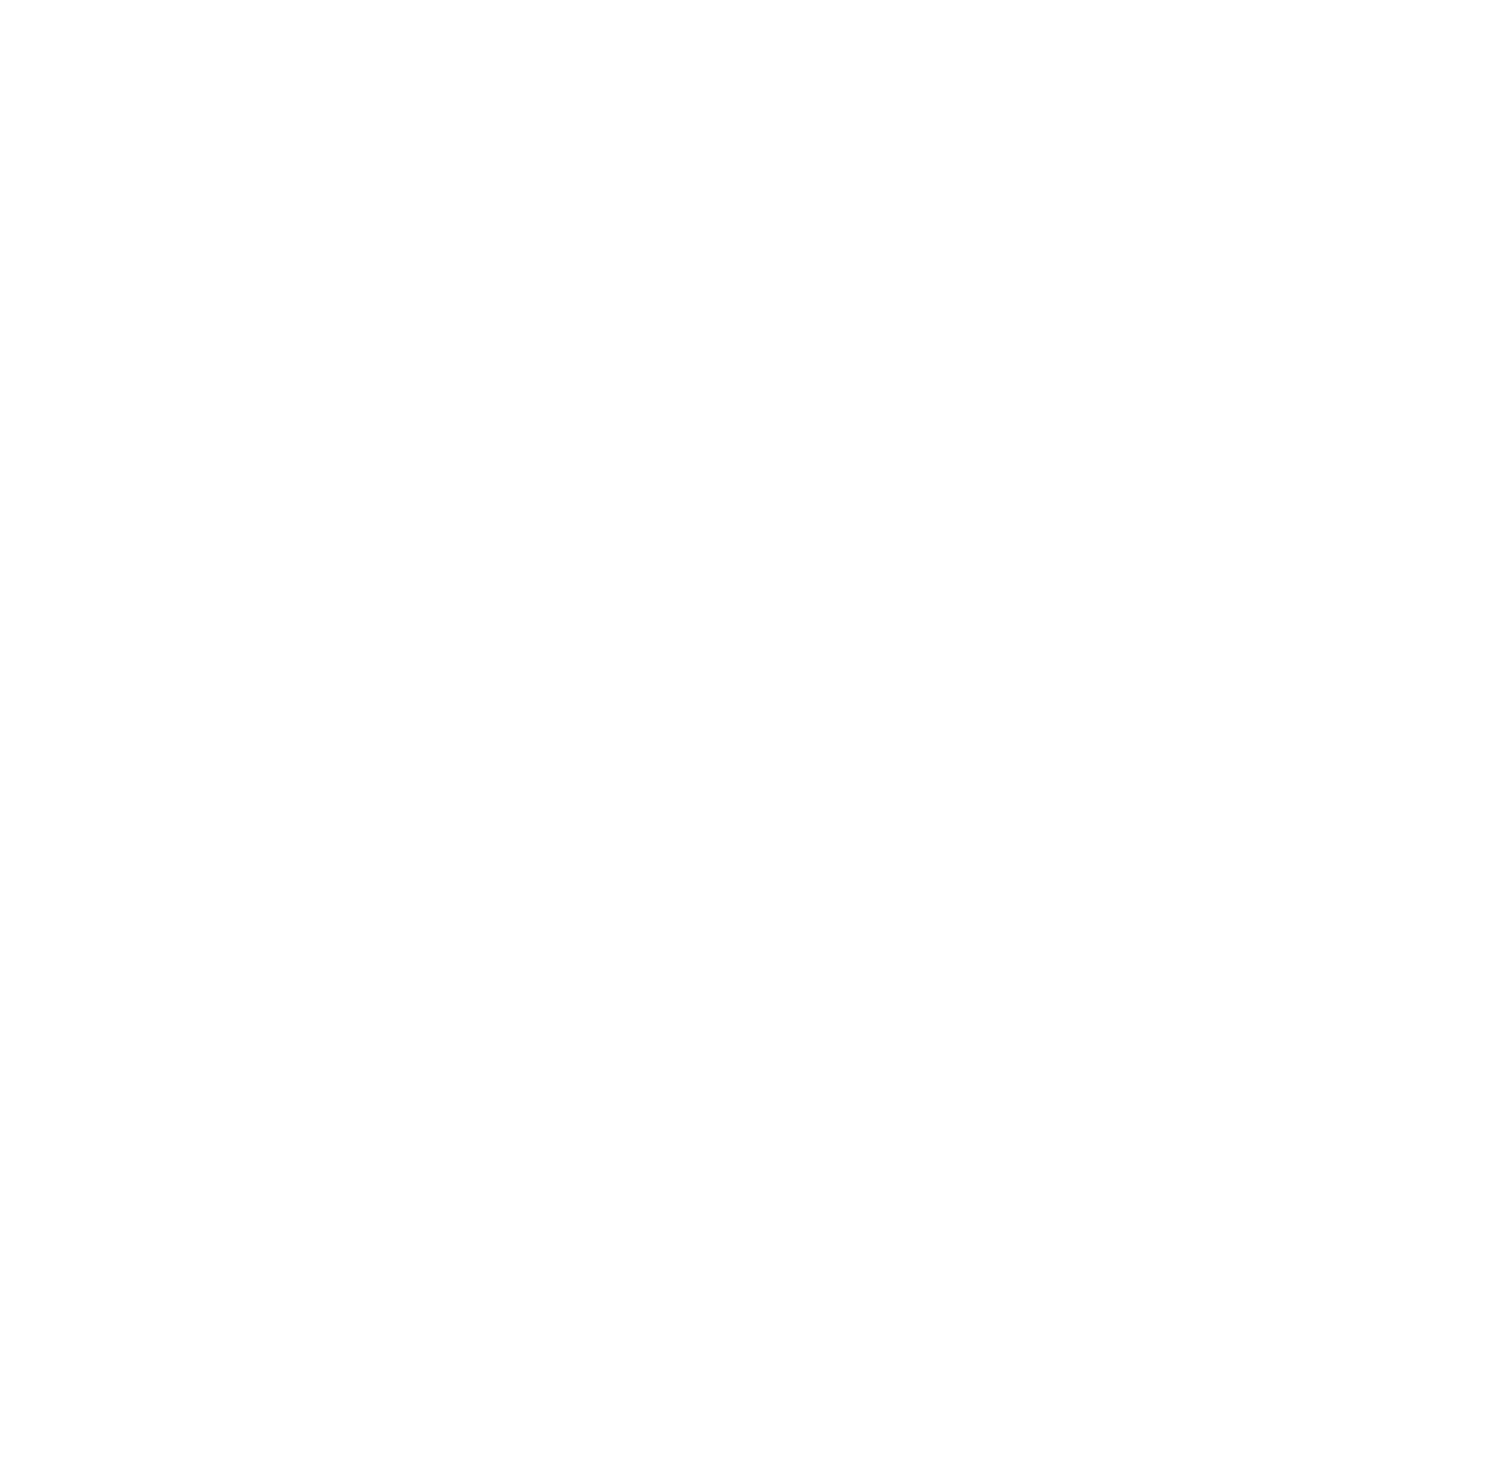 Harvest In the Square